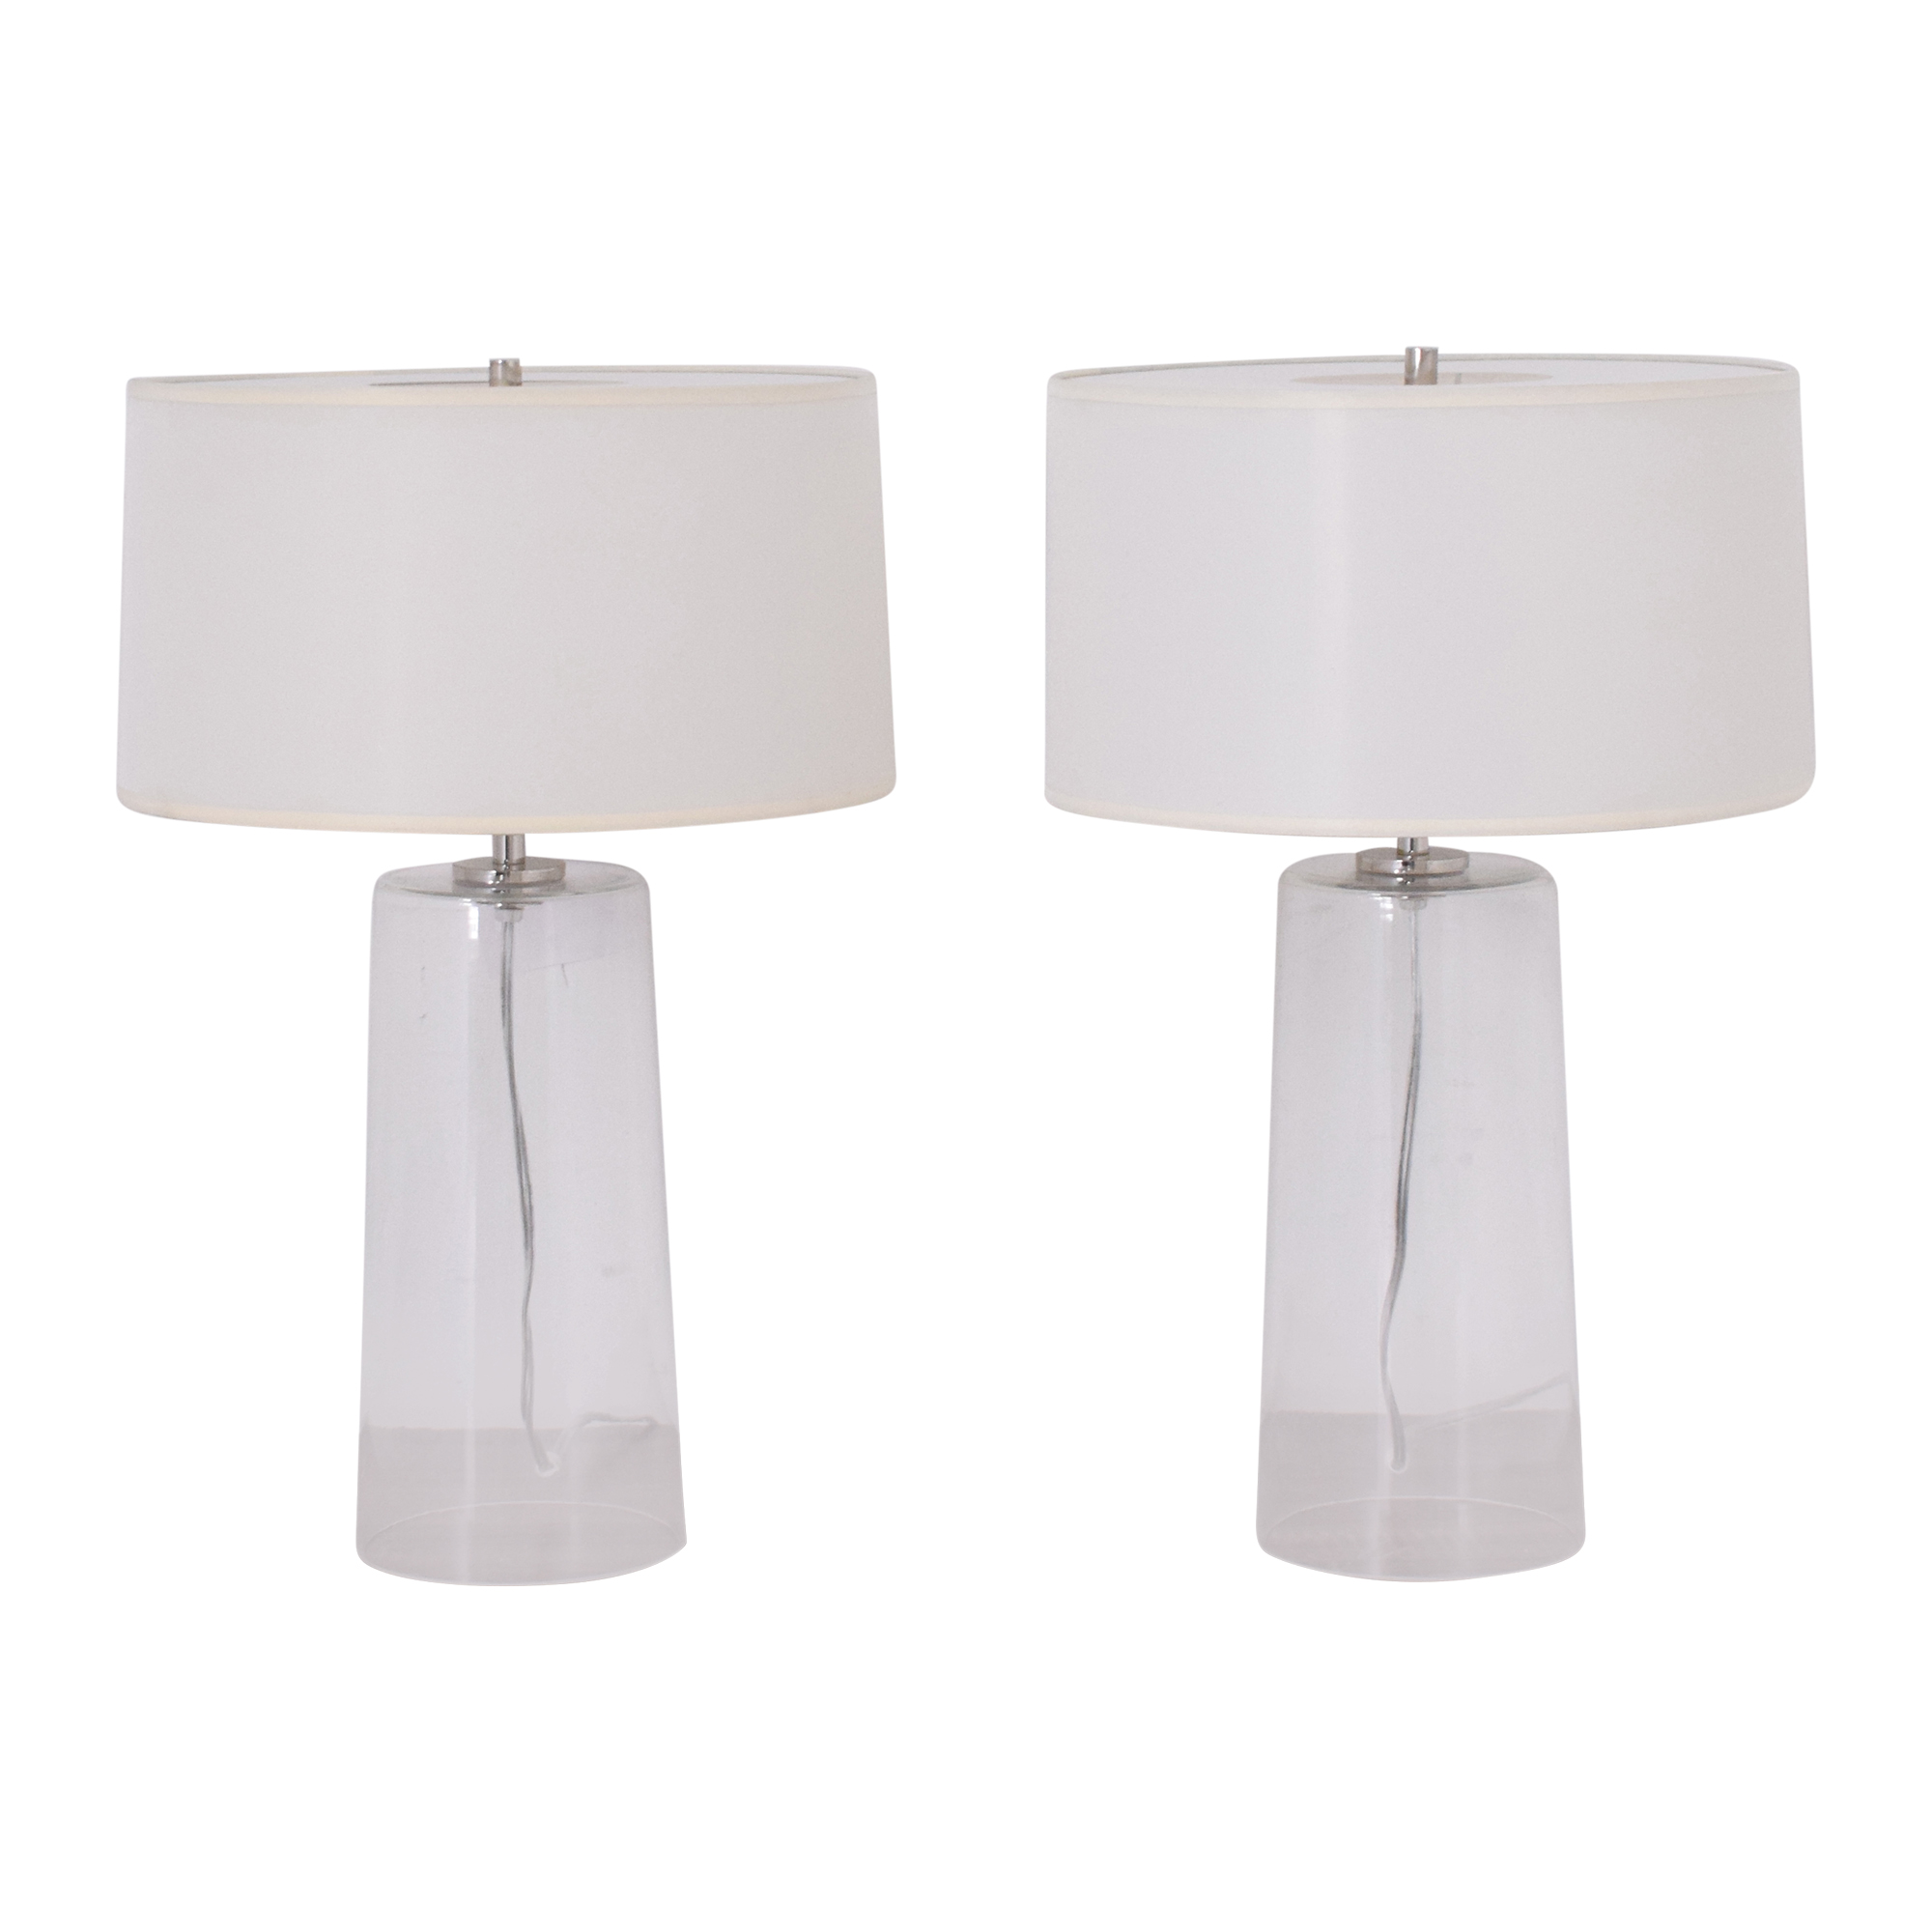 buy Robert Abbey Rico Espinet Olinda Accent Lamps Robert Abbey Lamps